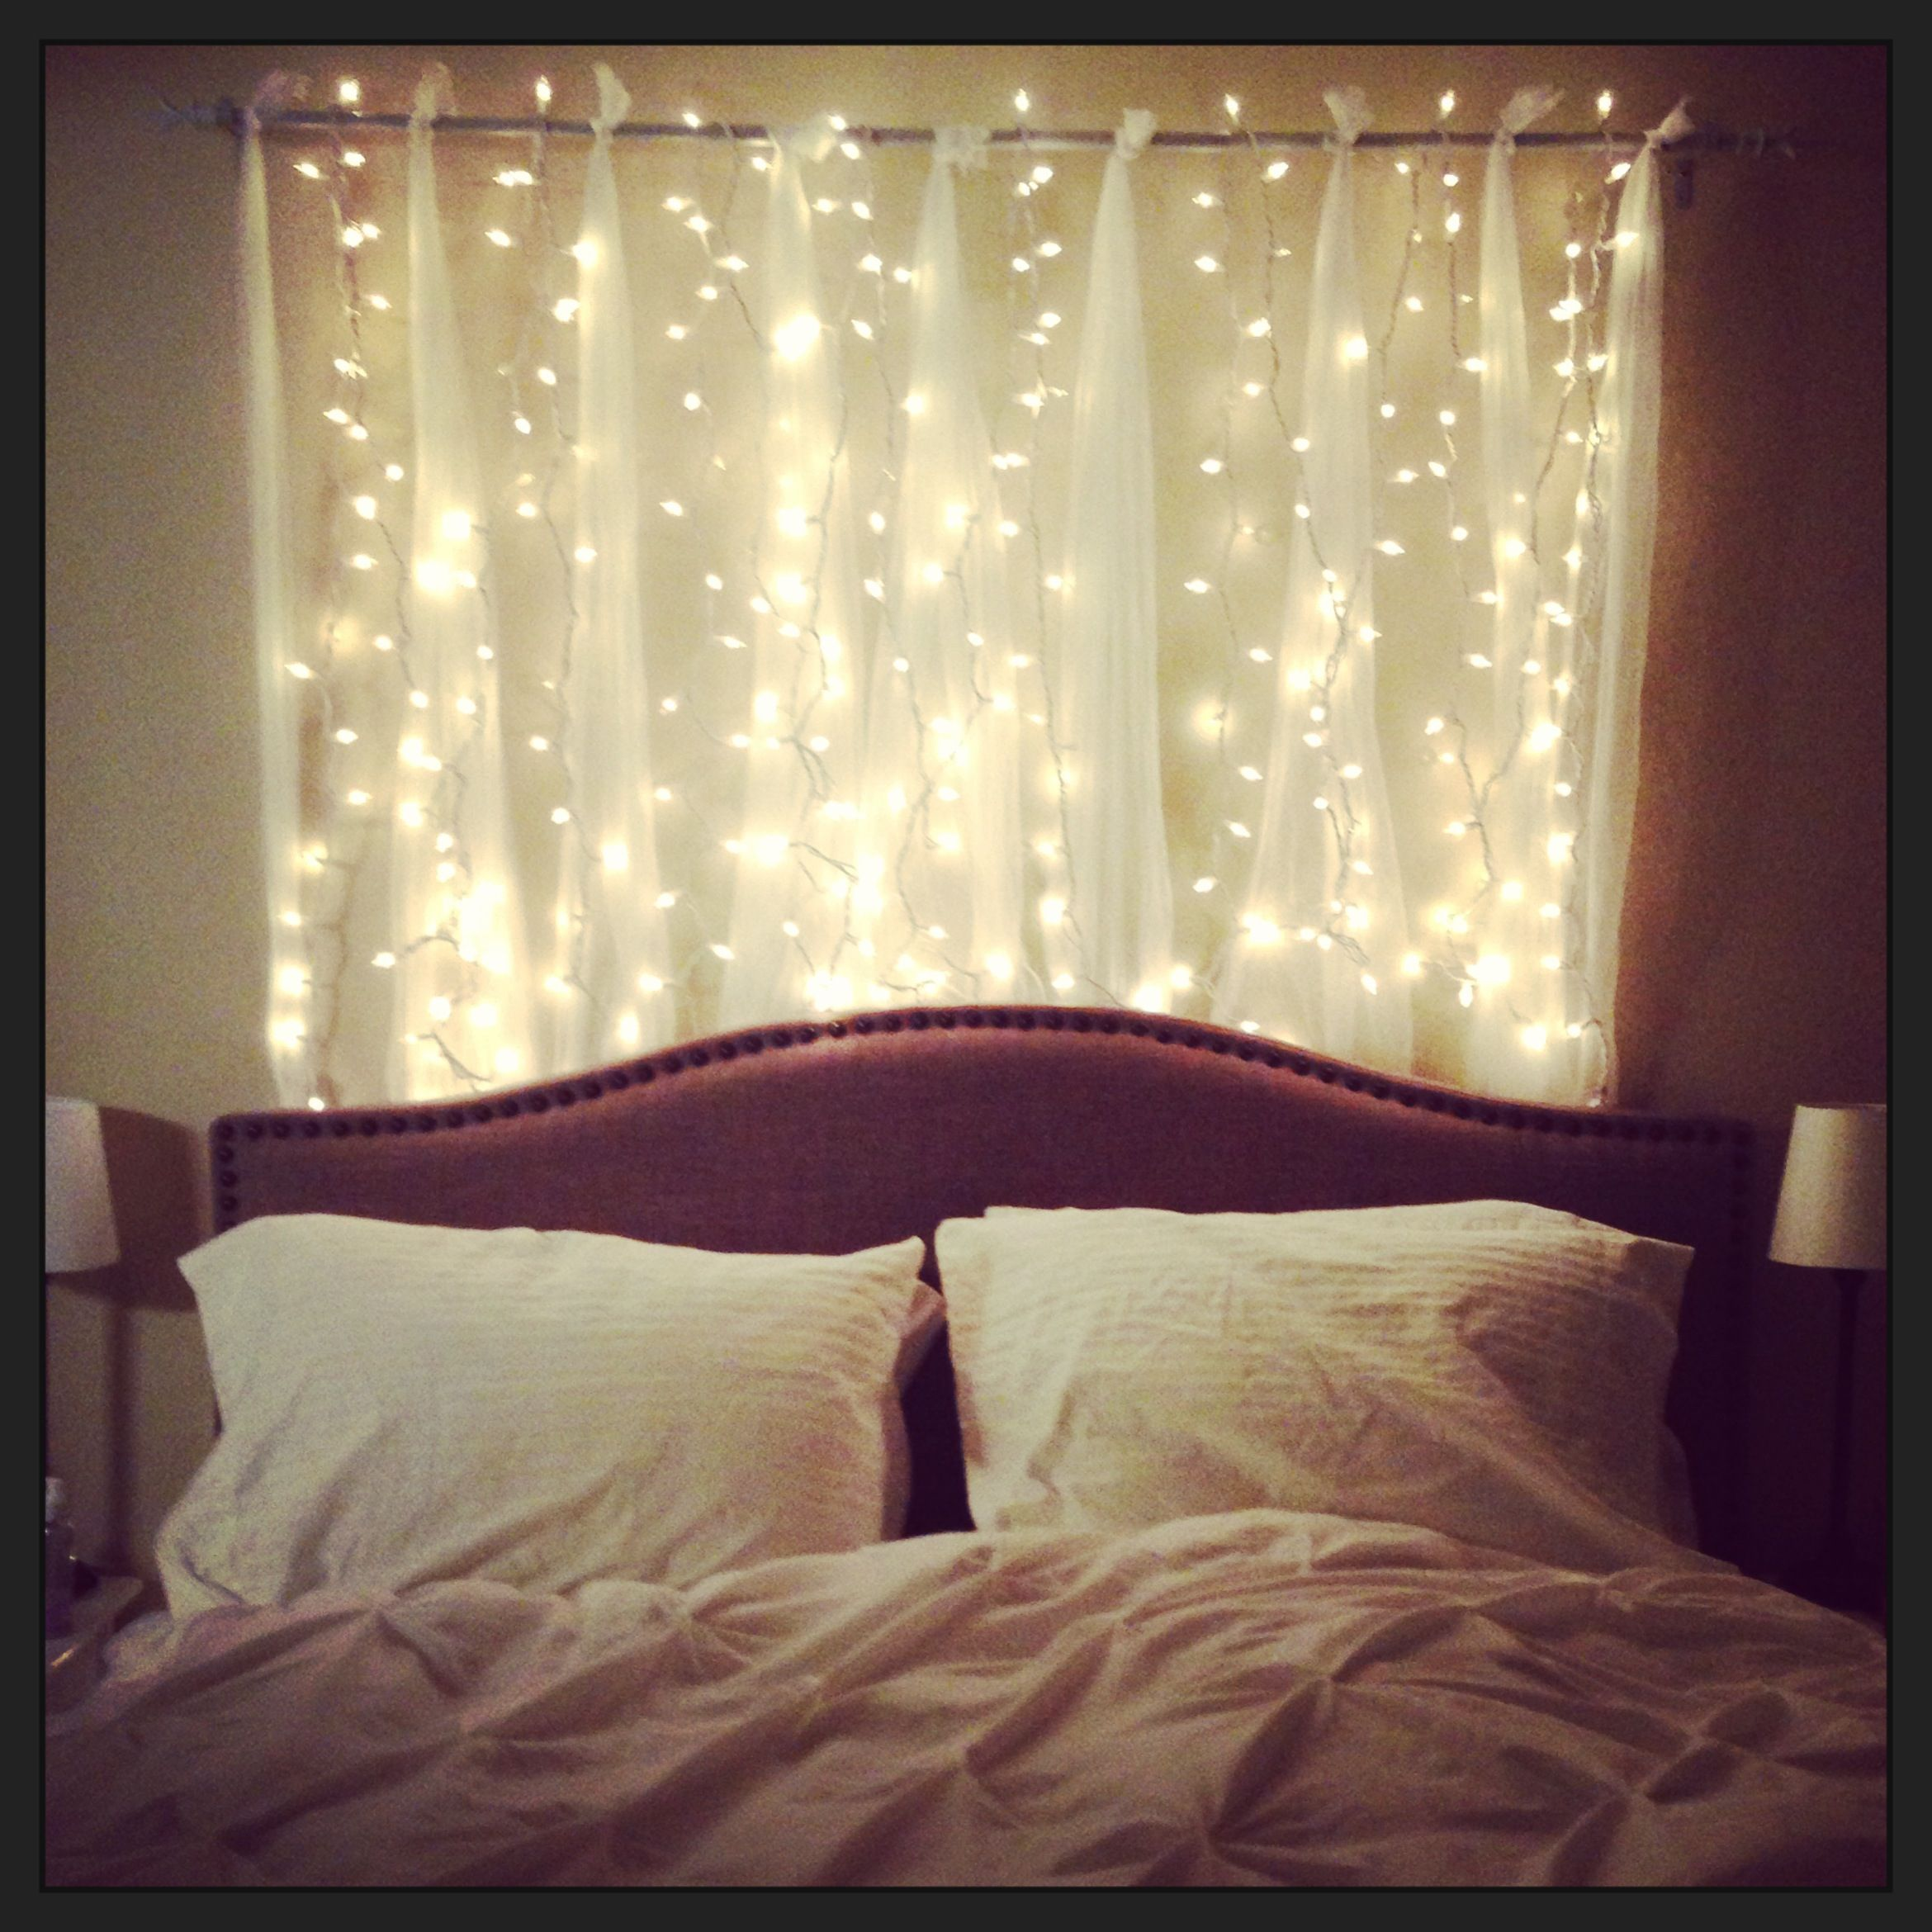 Bed Headboard Christmas: Twinkle lights headboard     I absolutely love this!   home    ,